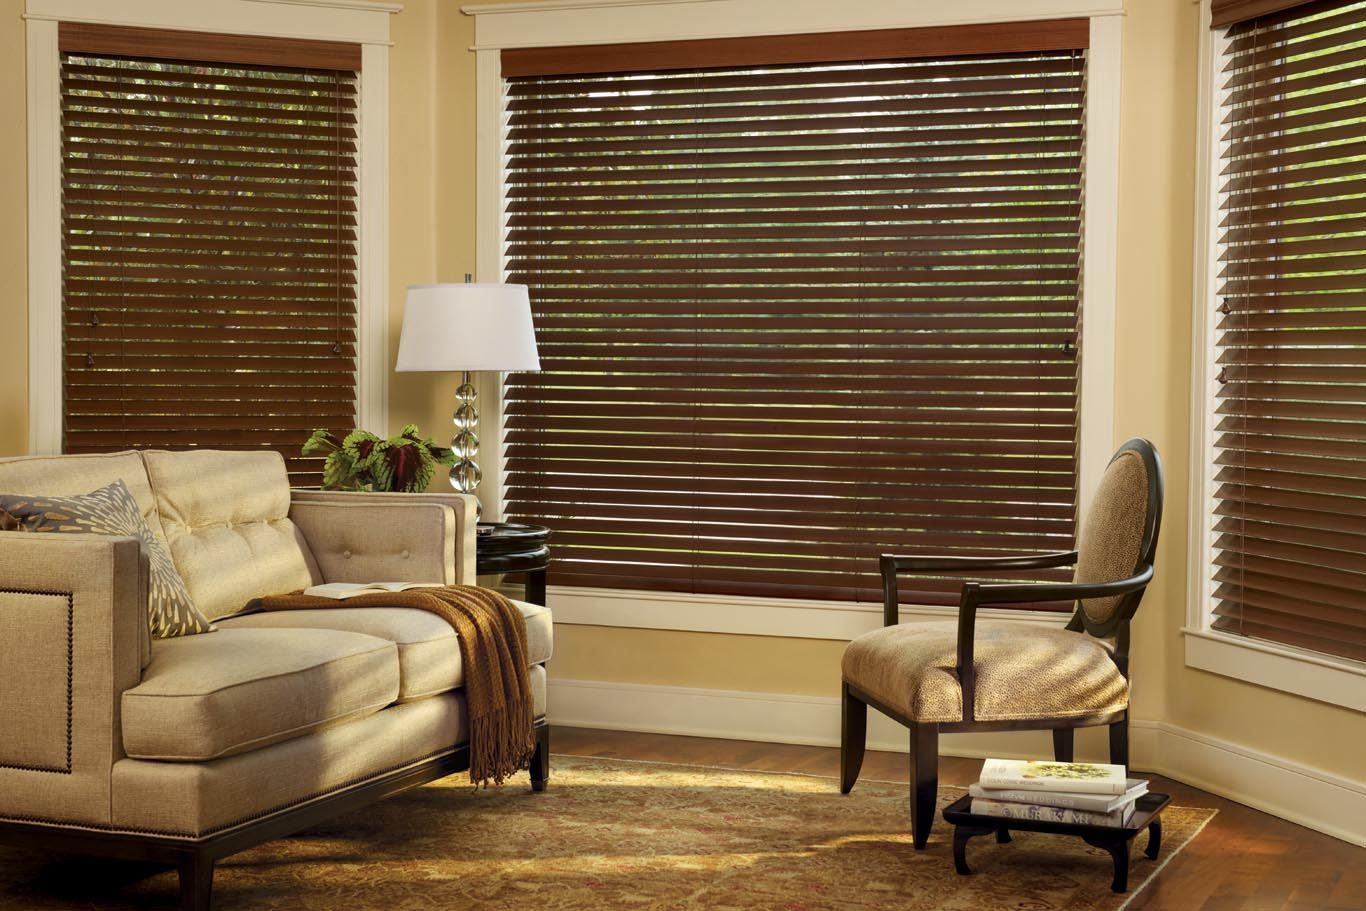 Living Room Window Blind Ideas Run The Expanse Of Styles From Traditional To Modern Casual And Rustic Or Living Room Blinds Living Room Windows Wooden Blinds